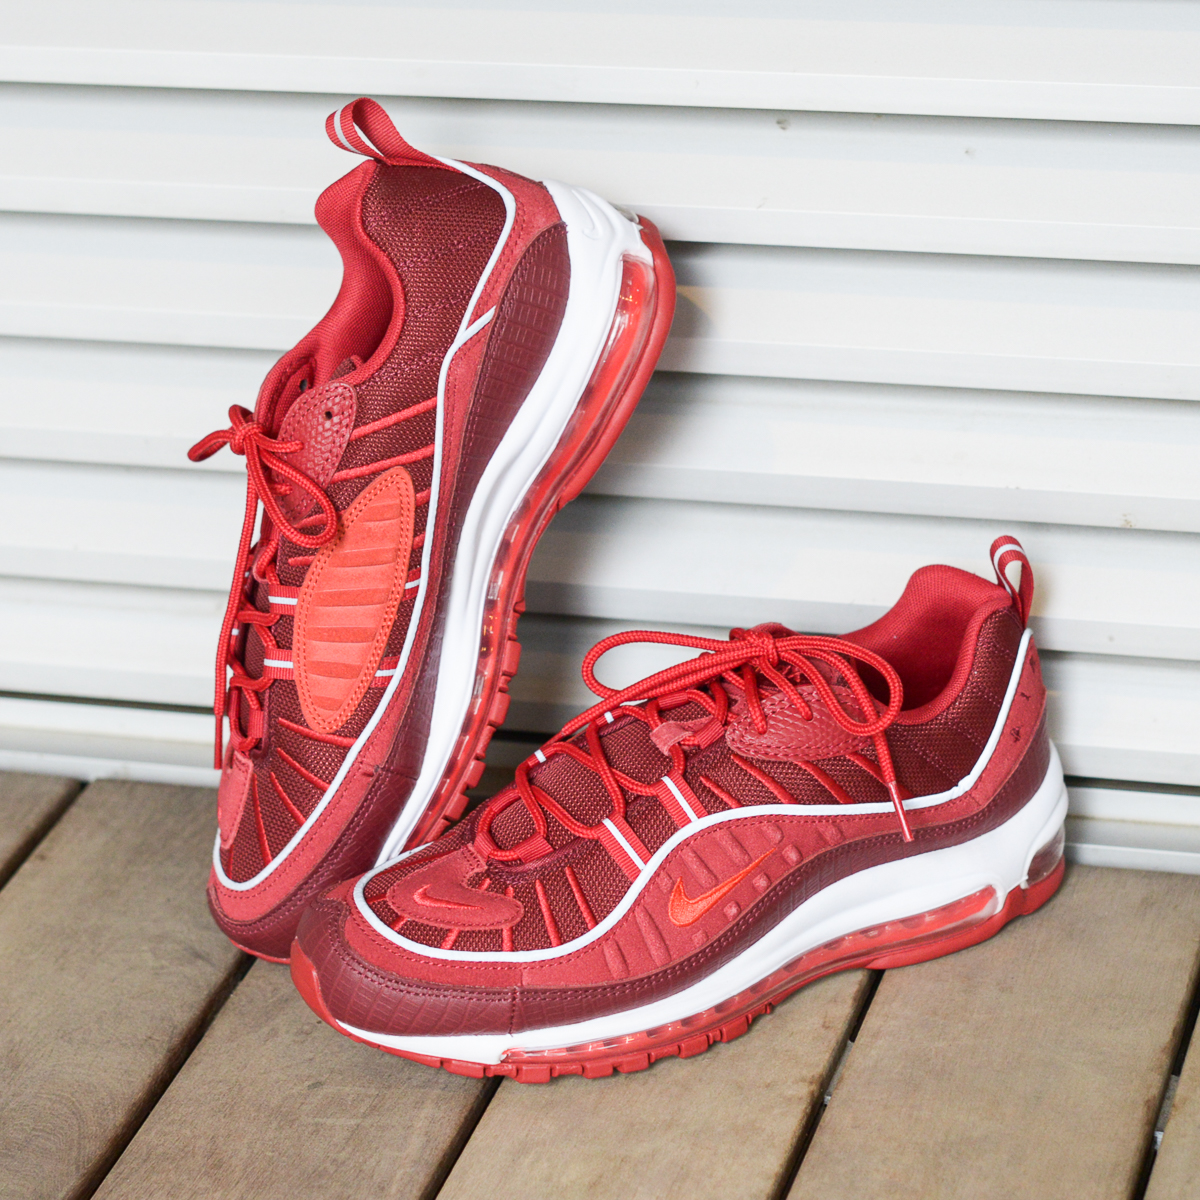 NIKE AIR MAX 98 SE(ナイキ エア マックス 98 SE)(TEAM RED/HABANERO RED-GYM RED-WHITE)18SU-S